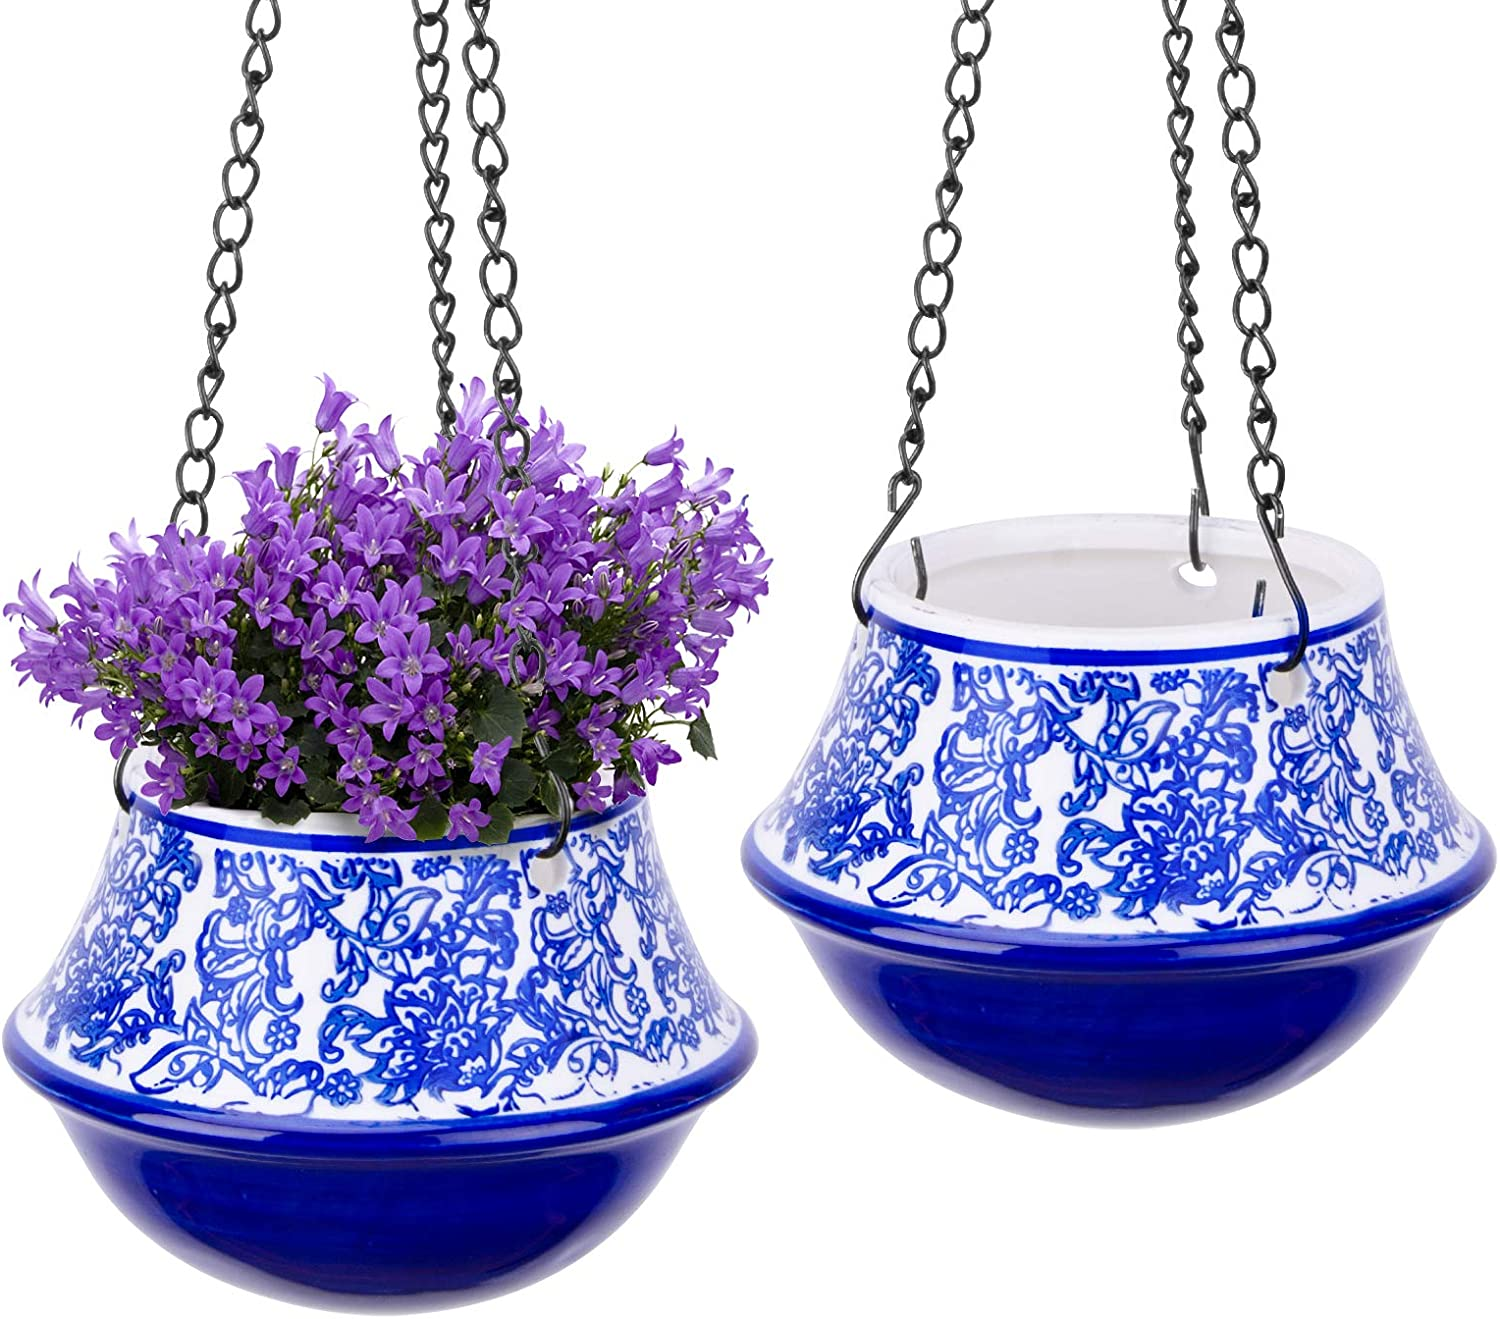 UERMEI Ceramic Hanging Planters Indoor - Blue and White Floral Hanging Pots for Succulents Herbs Ferns Small Plants | Retro Home Decor | Exotic Hanging Plants Pots for Gardening (2 Pack)